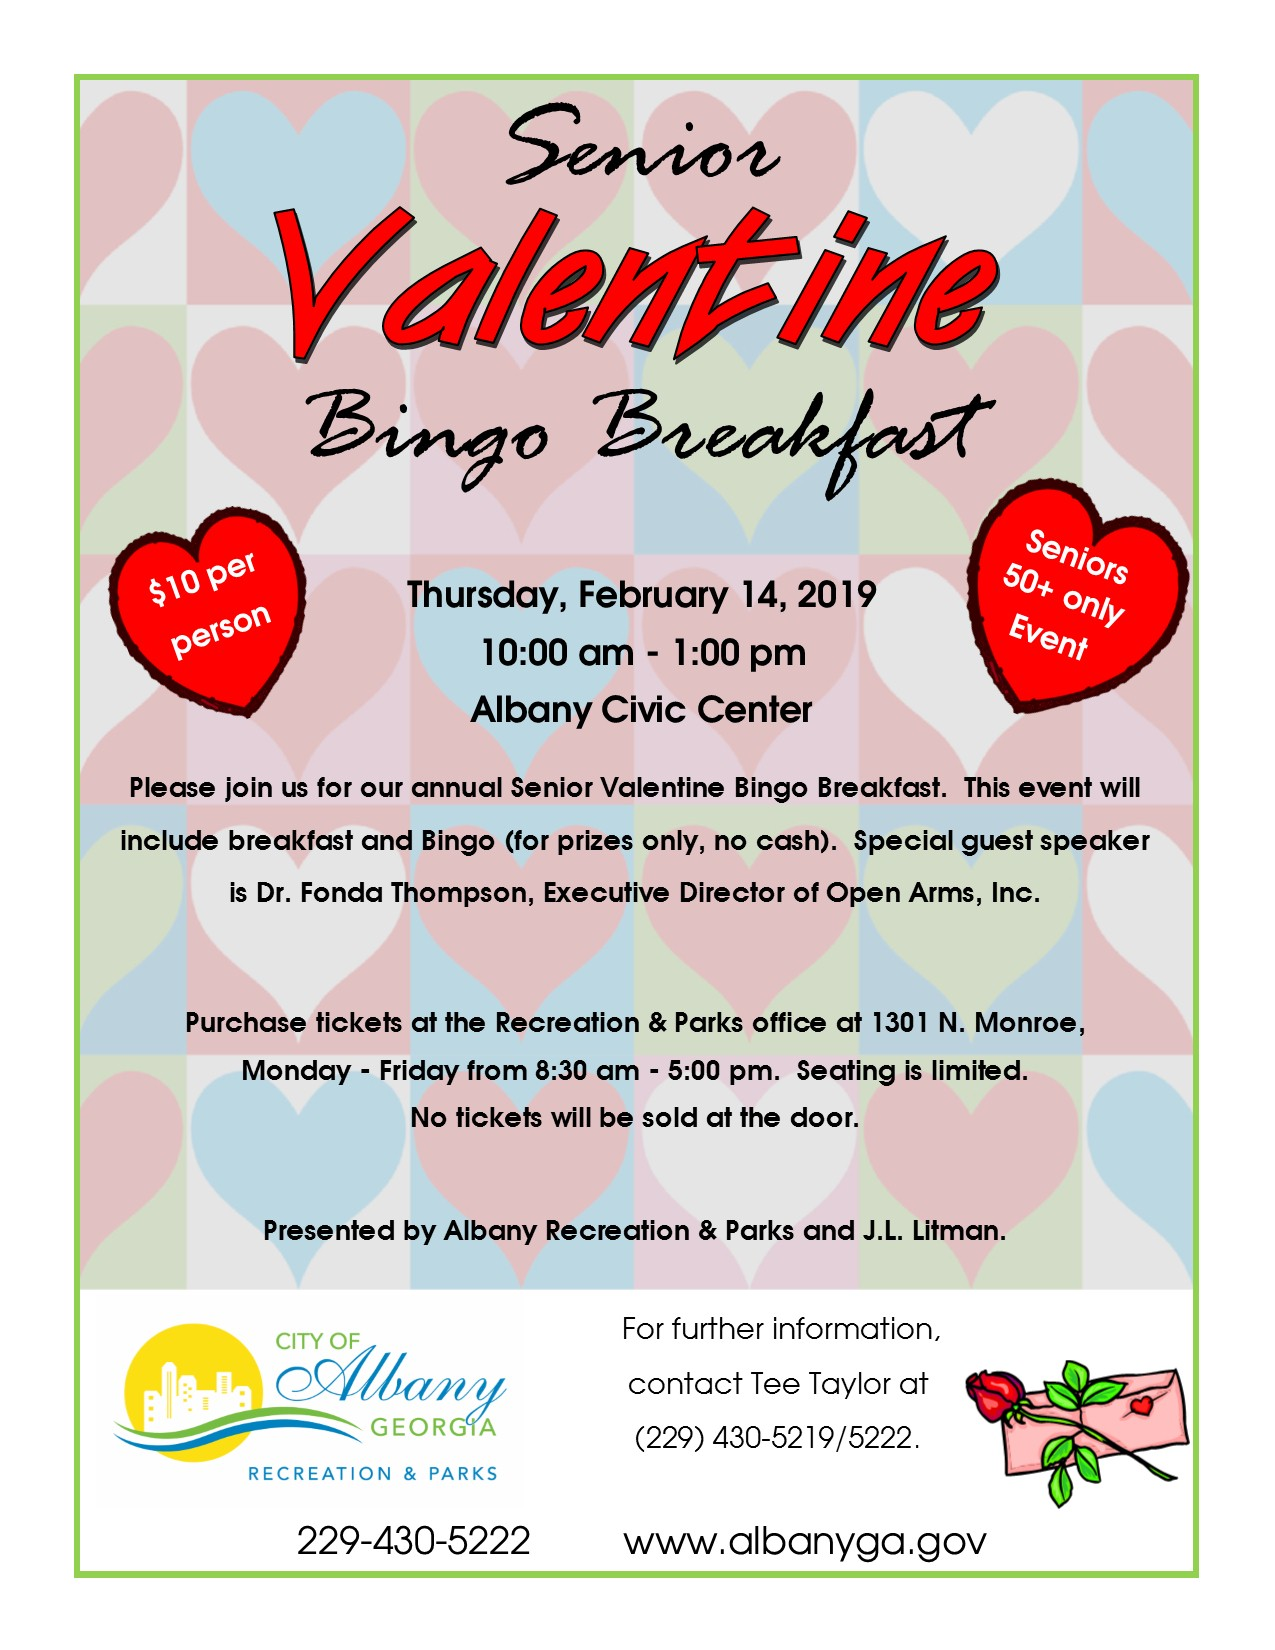 Senior Valentine Bingo Breakfast